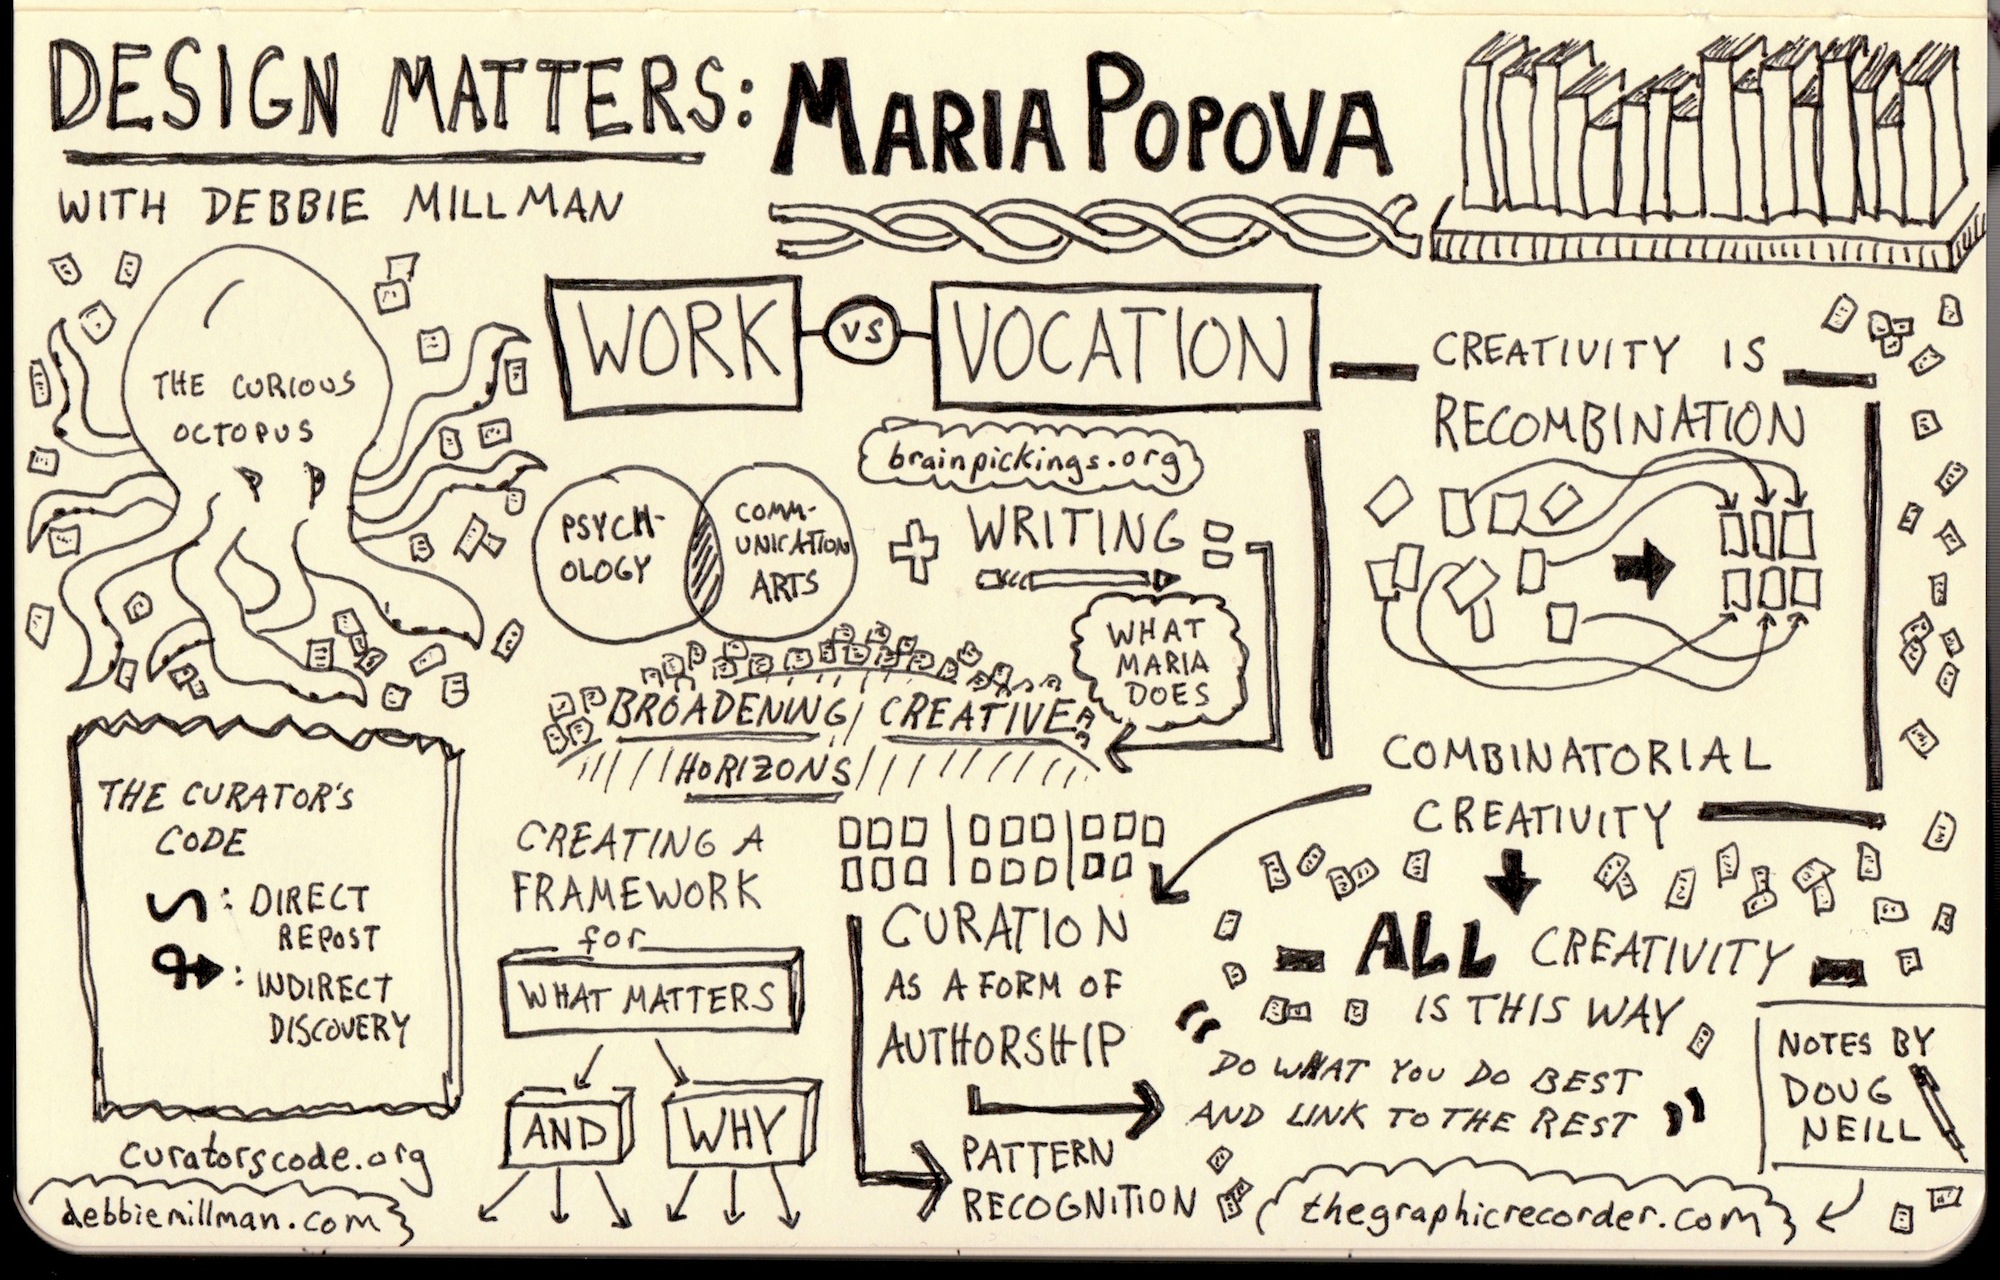 Sketchnotes of Maria Popova Interview on Design Matters with Debbie Millman - Doug Neill - the graphic recorder - work vs. vocation, the curious octopus, creativity is recombination, combinatorial recombination, the curator's code, pattern recognition